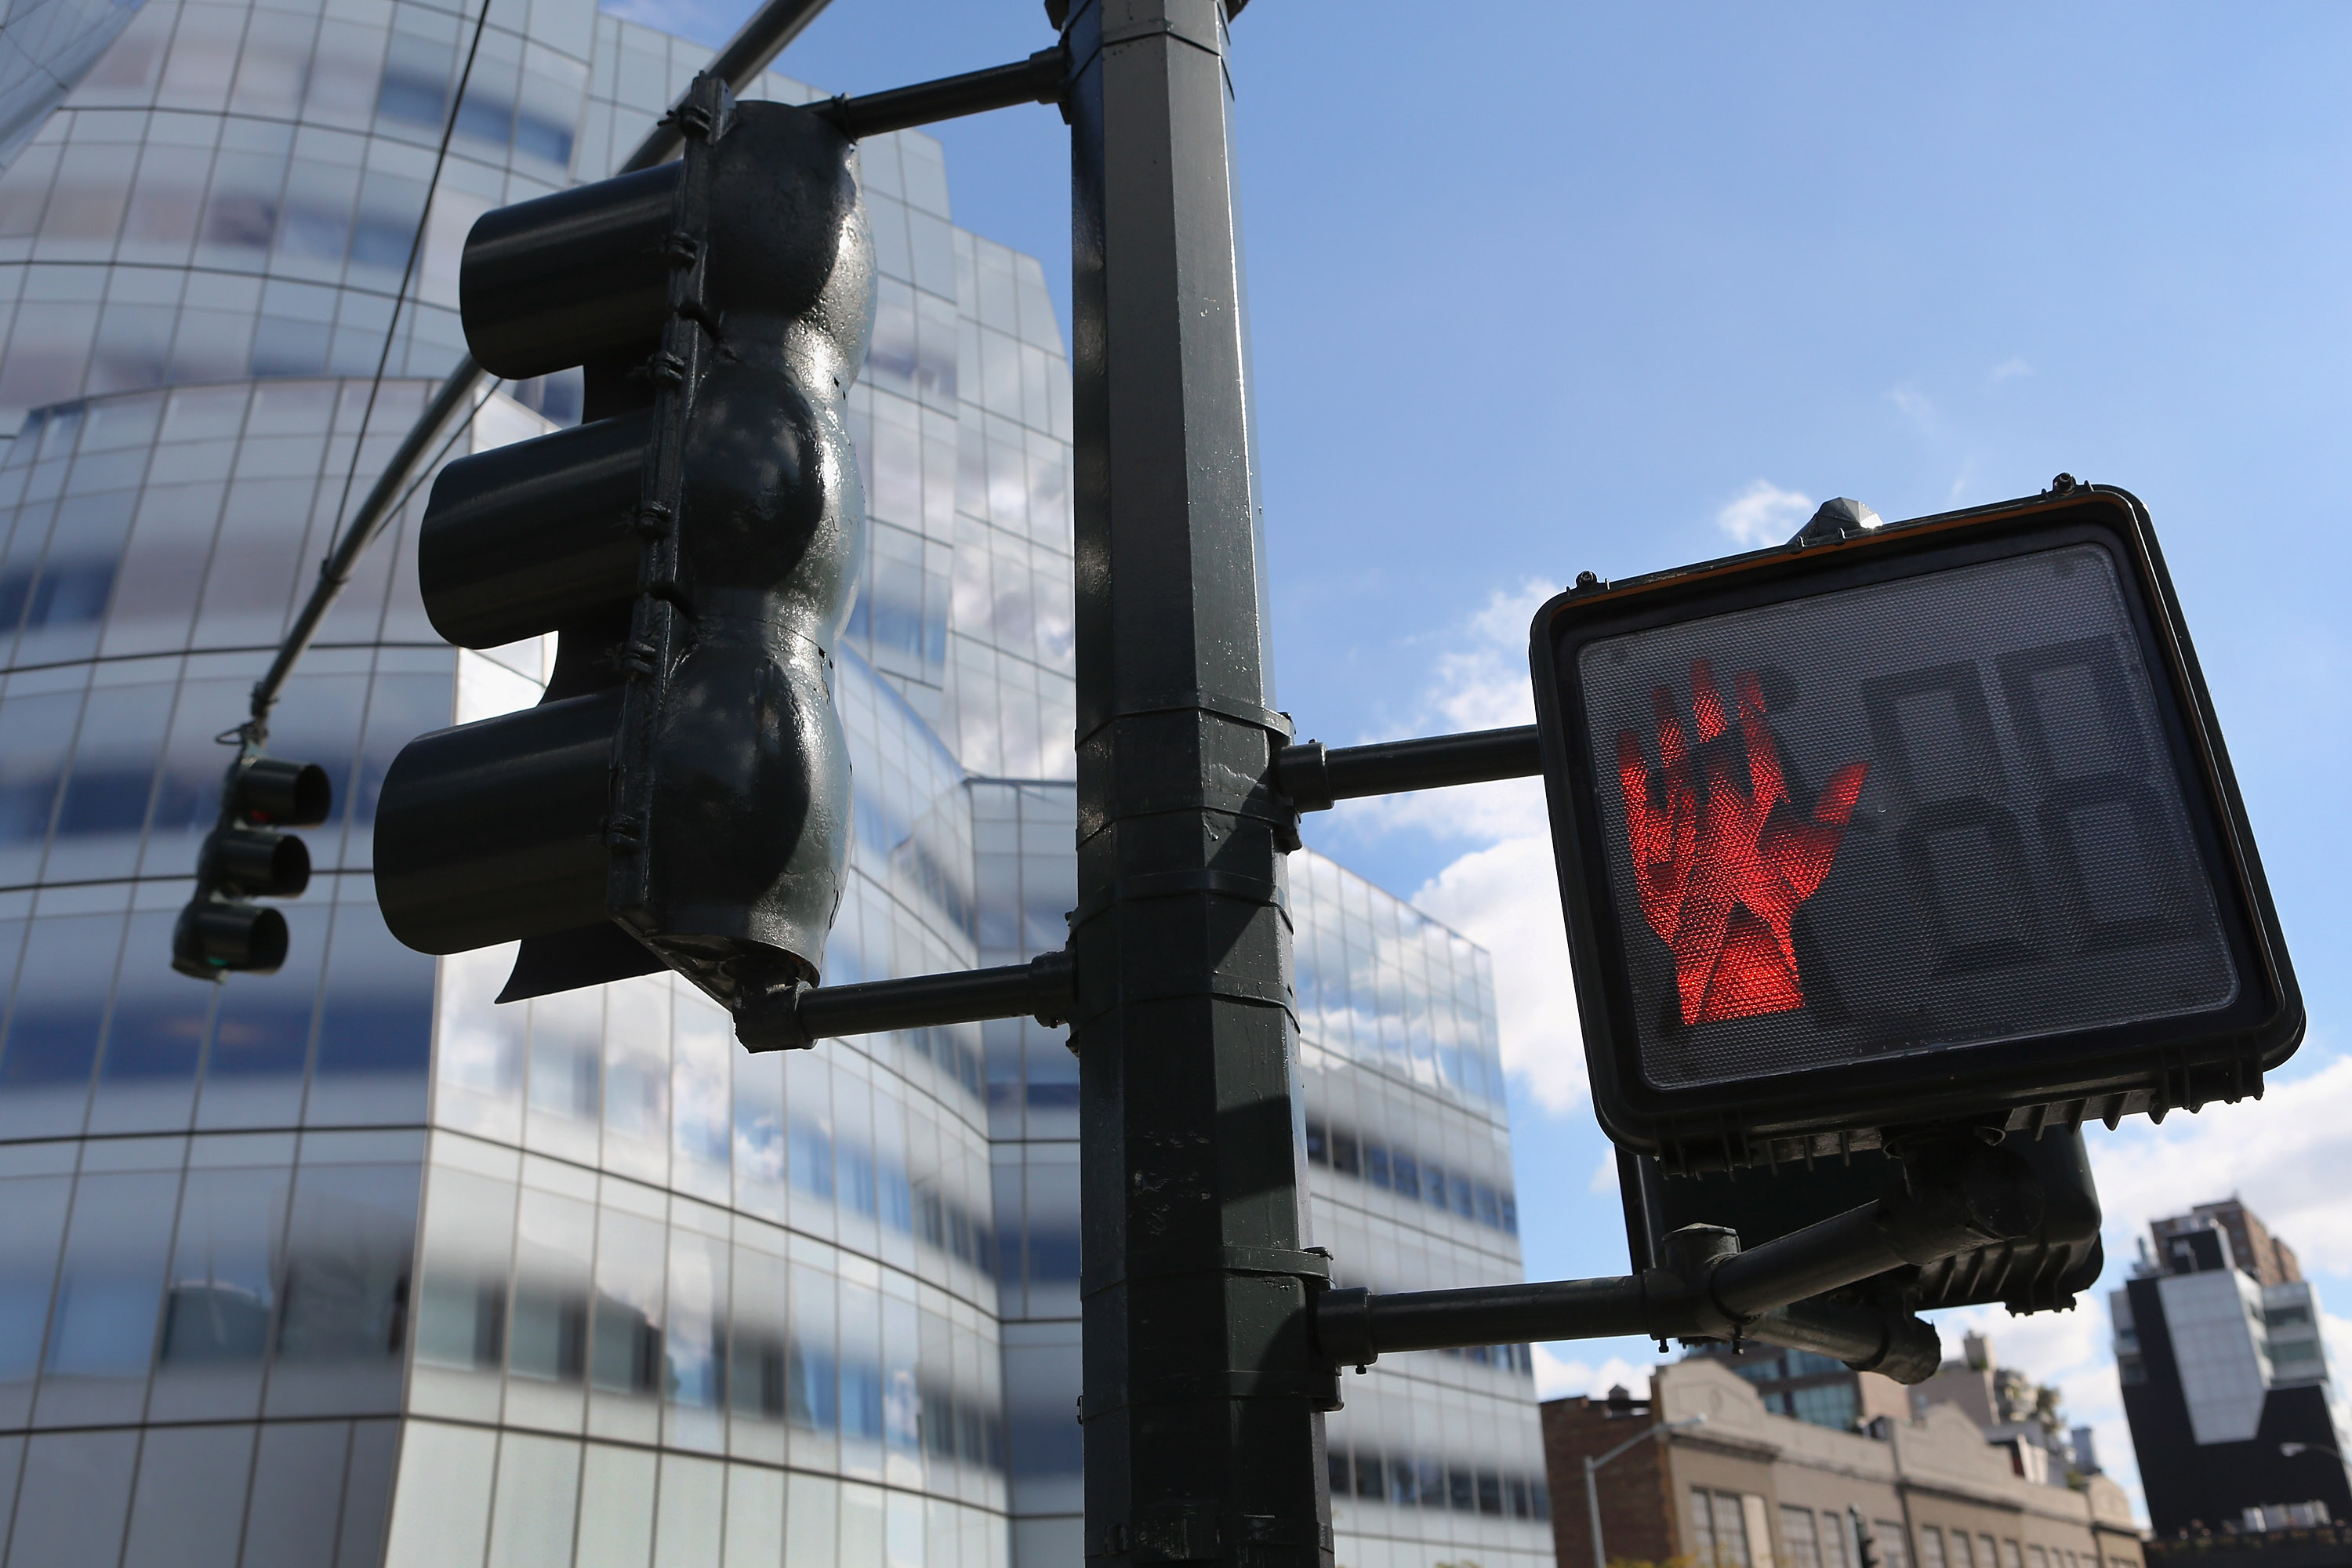 Update: NYC Red Light Cameras Up for Reauthorization